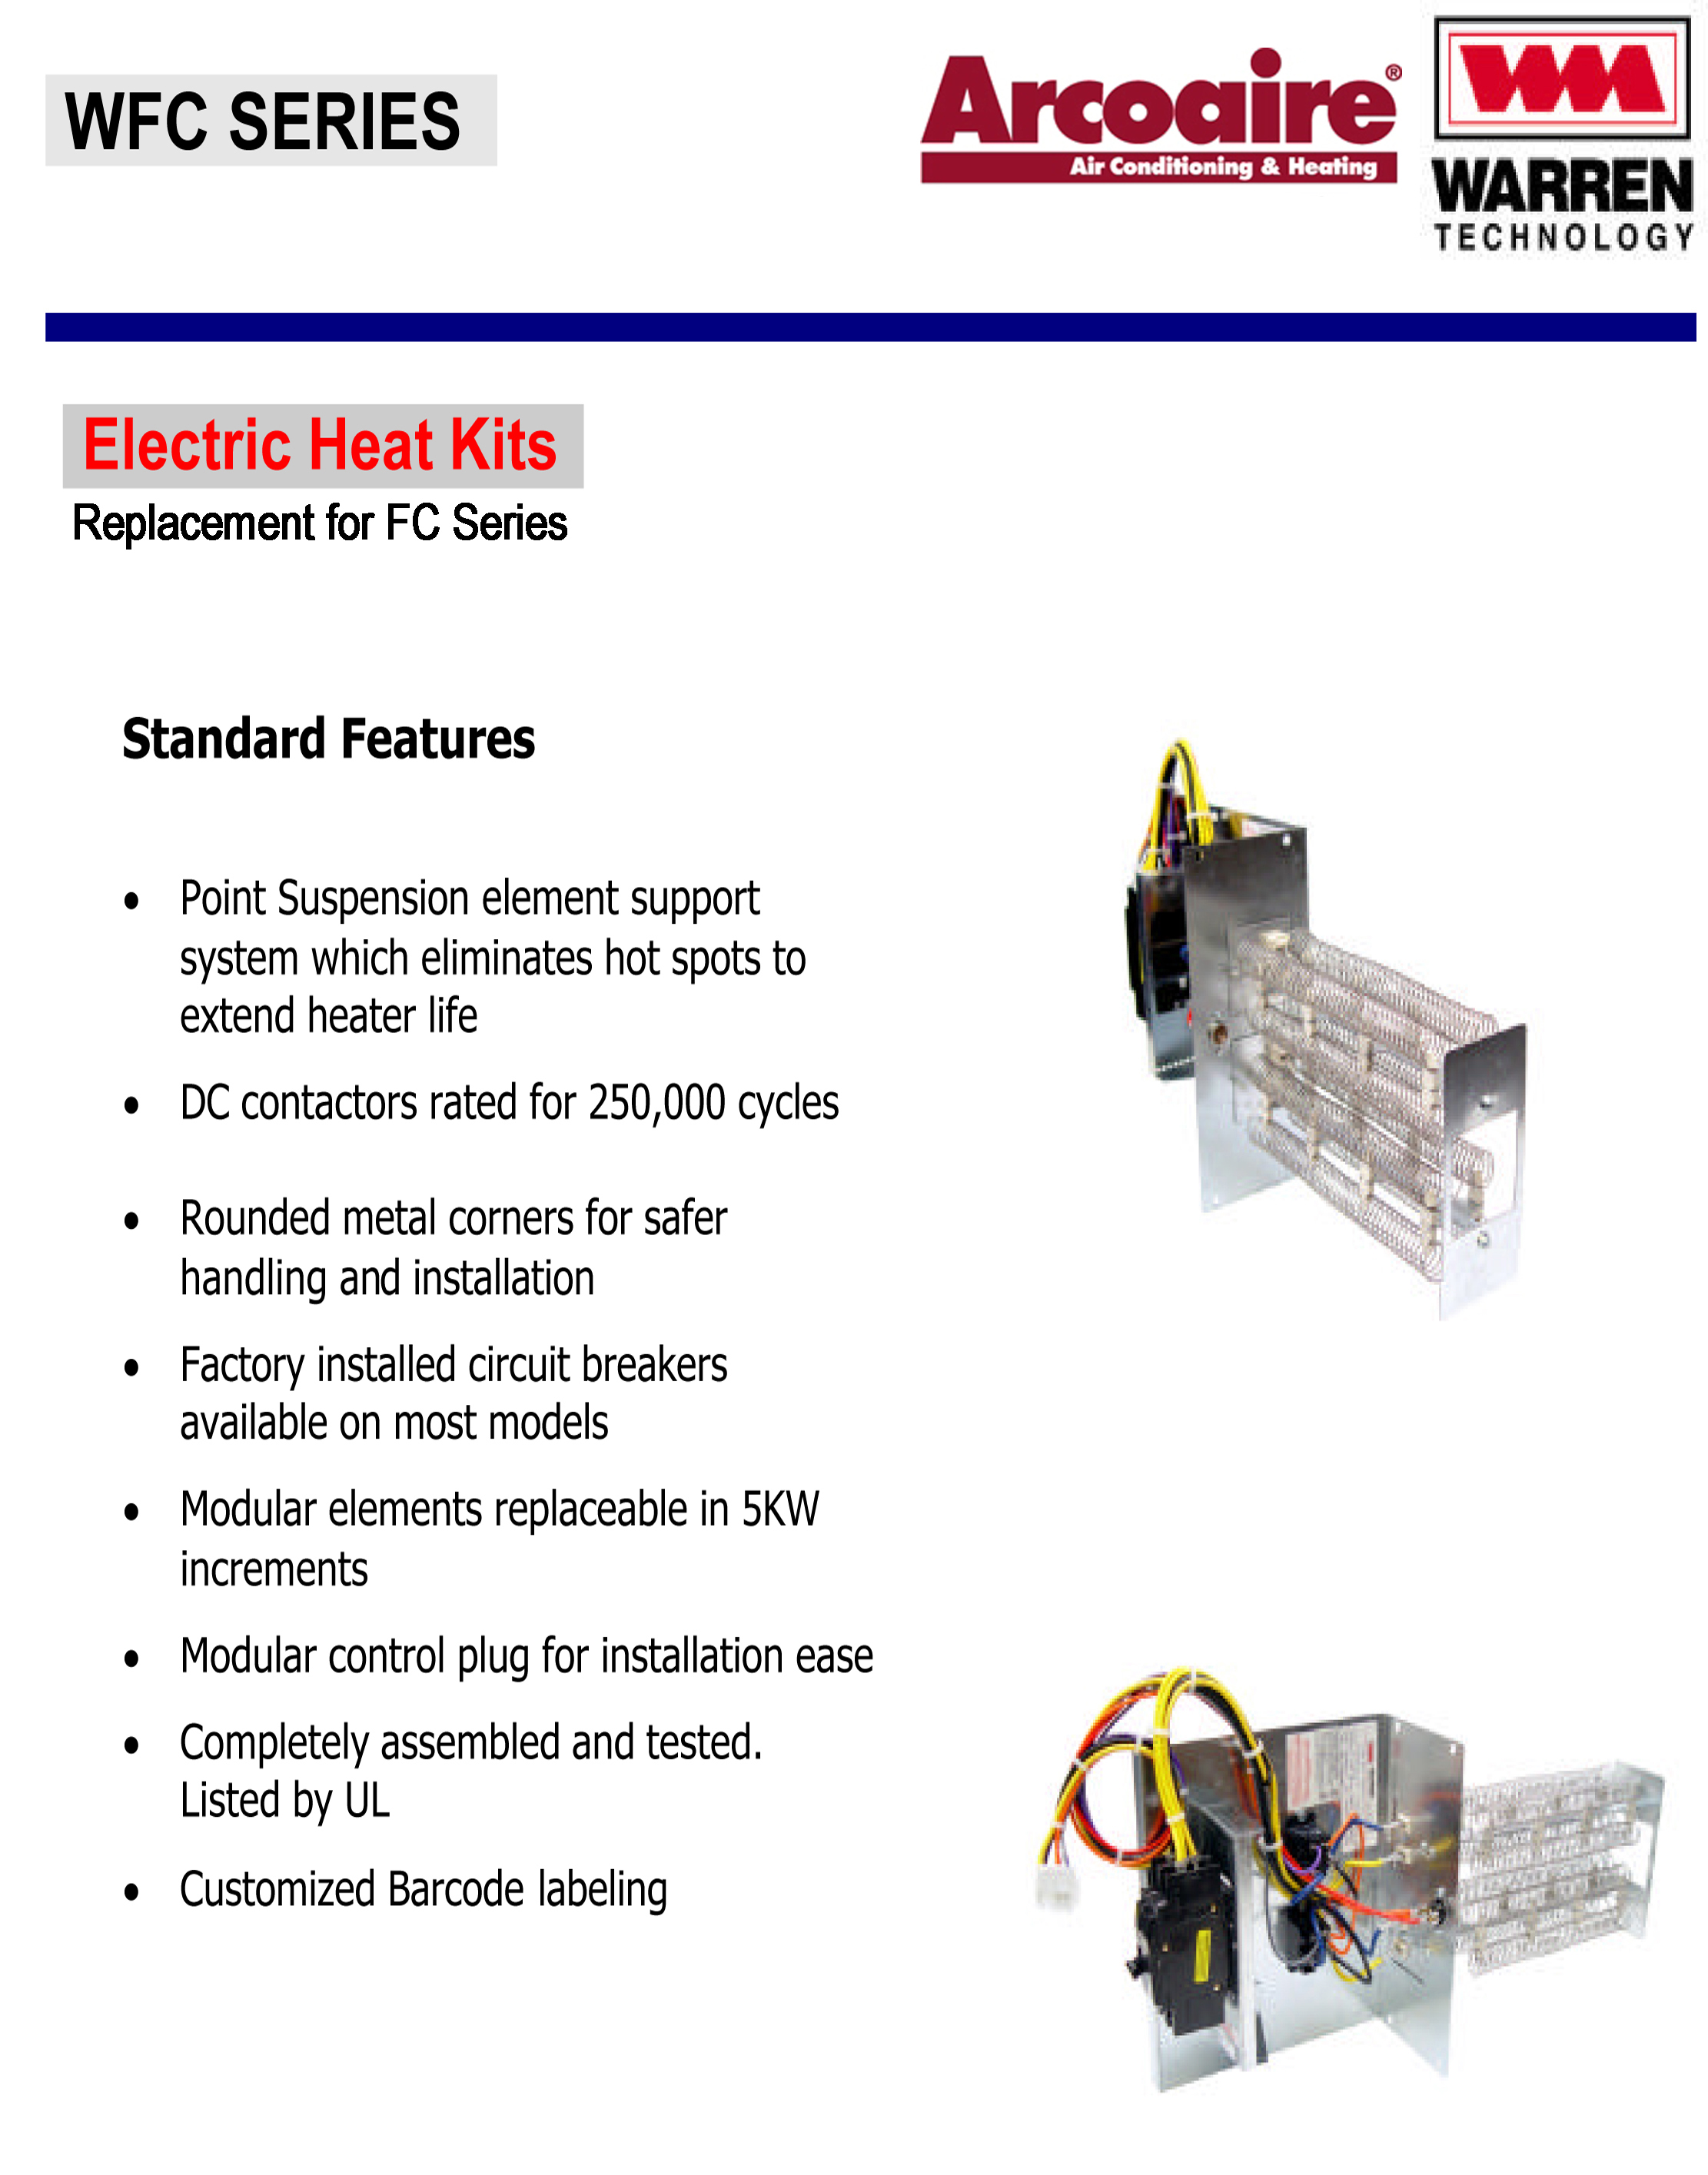 arcoaire wfc brochure copy 15 kw breakered heat strip for arcoaire air handlers fcv, fcp, fcx air ease heat pump wiring diagram at fashall.co